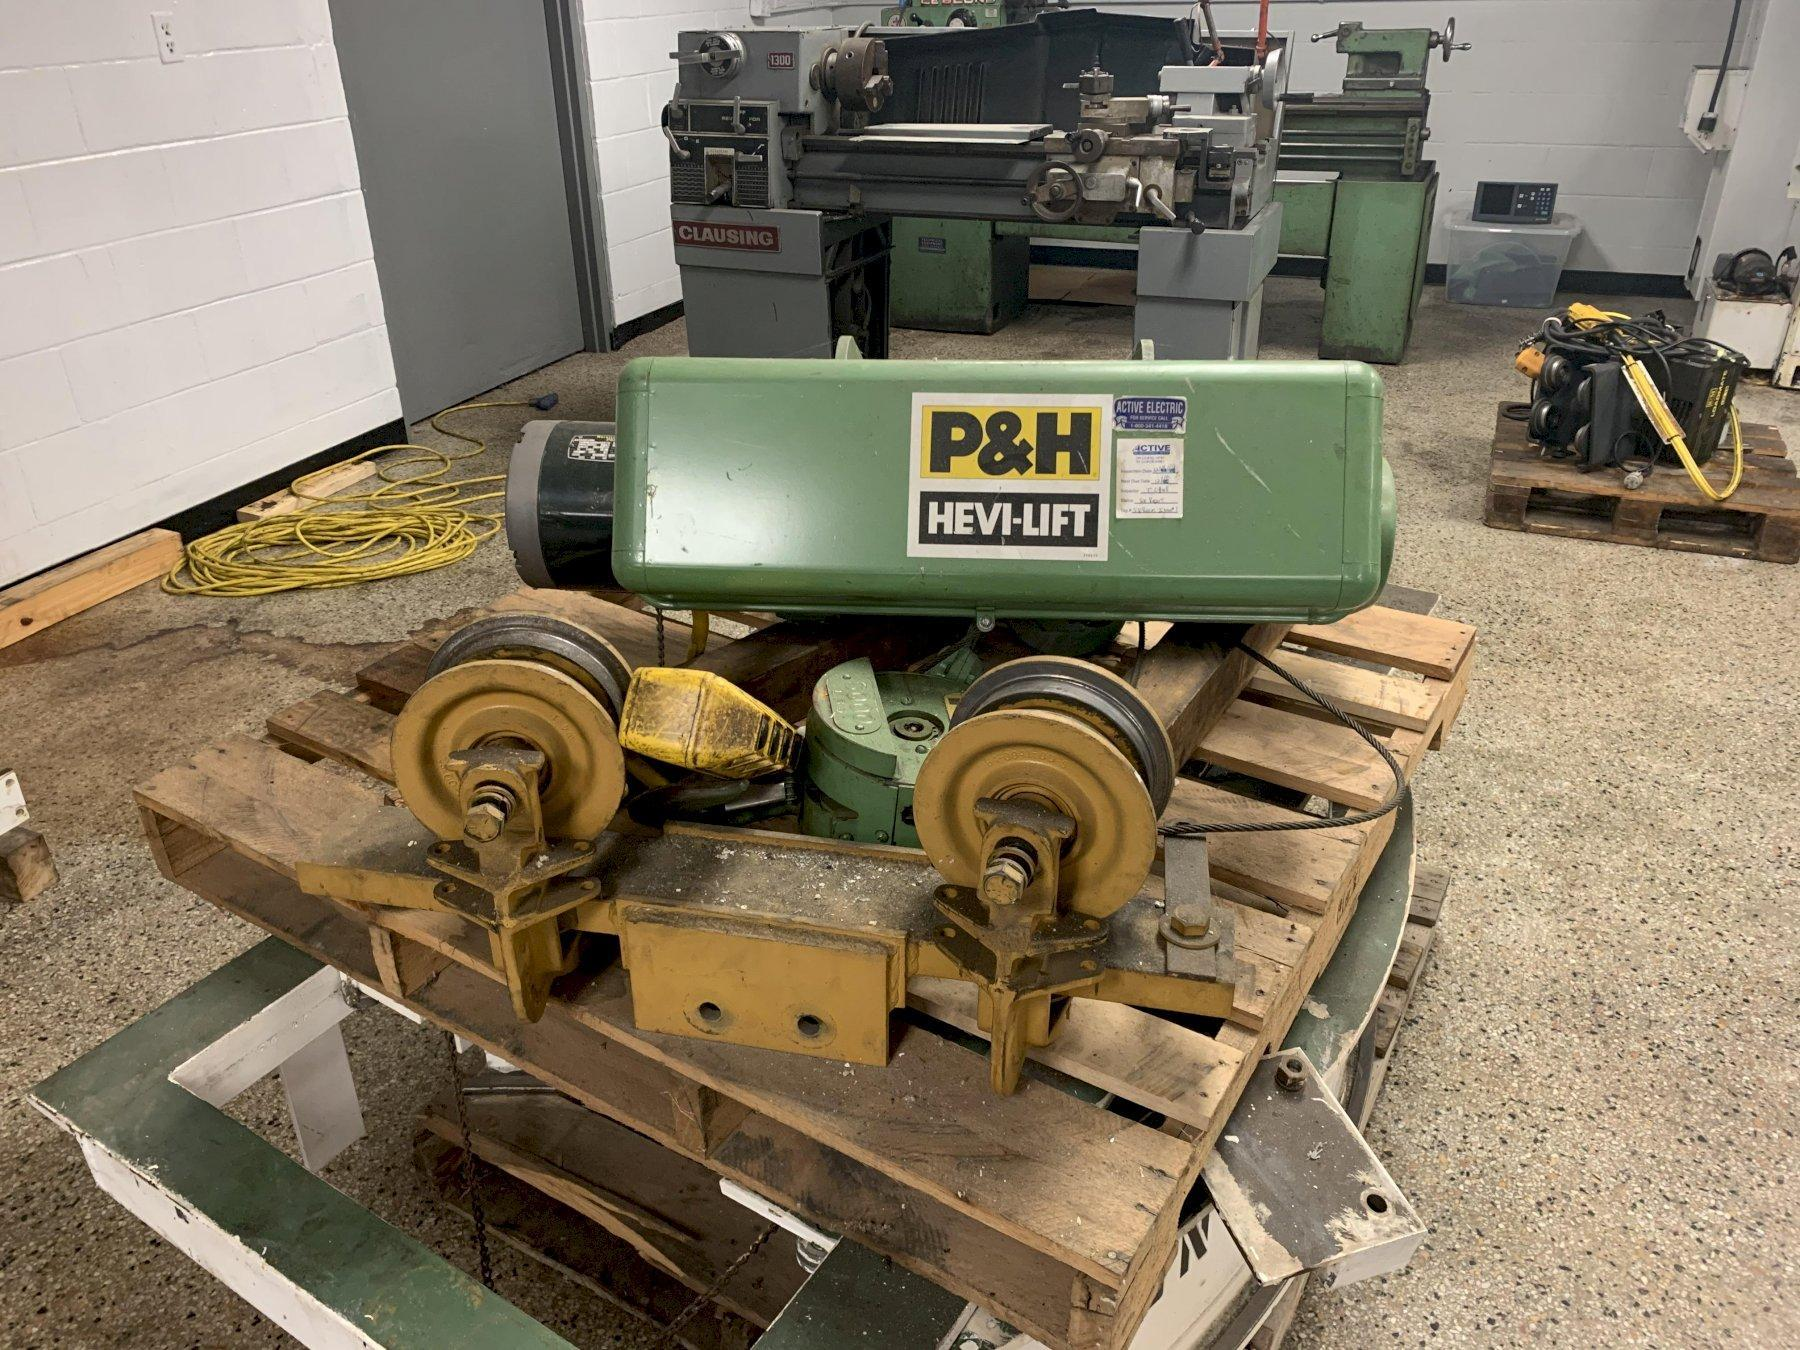 P&H Hevi-Lift 3 Ton Electric Hoist, Cat #5B332-1, S/N 613546,